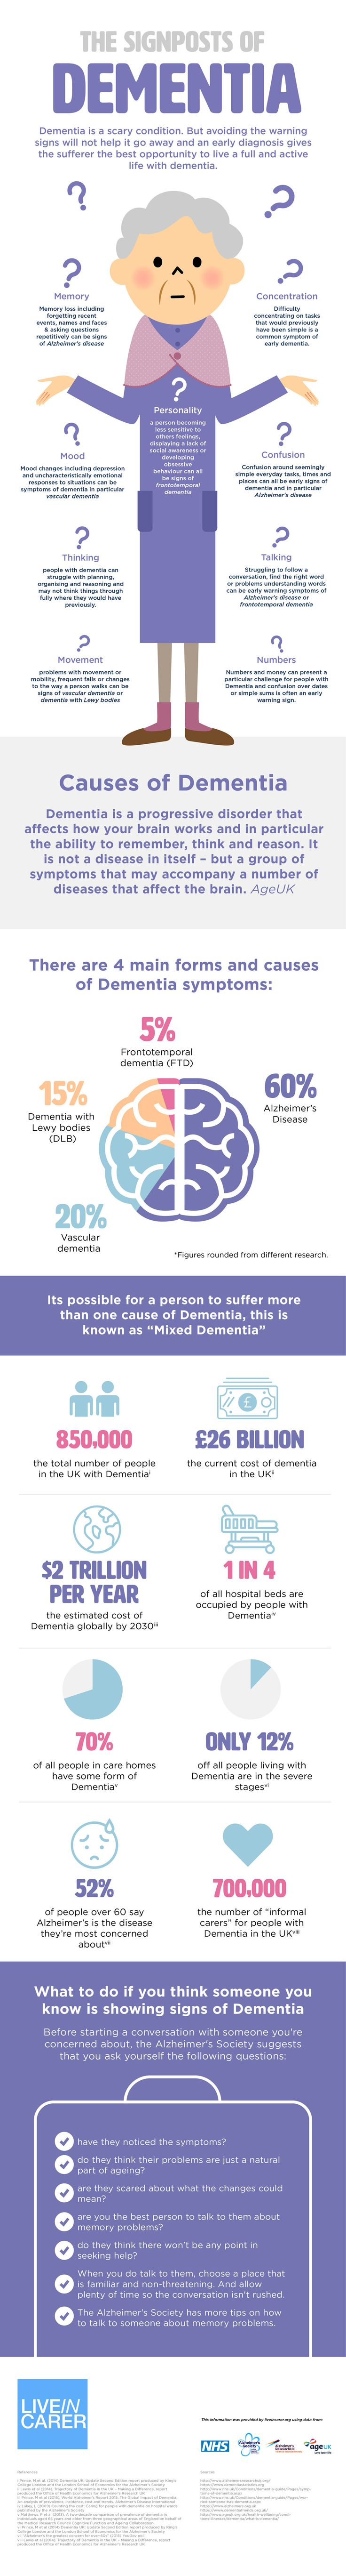 The Signs & Symptoms of Dementia